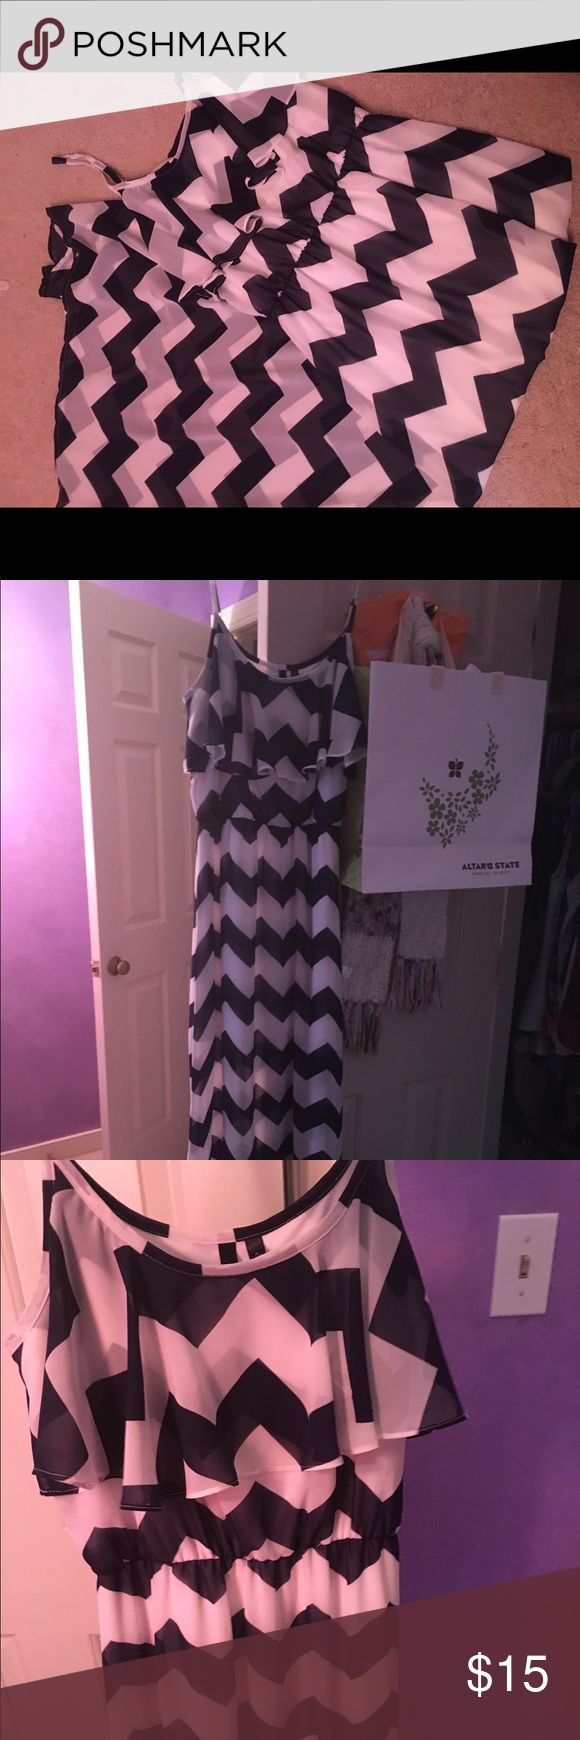 Chevron blue and white maxi dress. Size M. Blue and white chevron maxi dress from Target. Super cute for spring and summer. Only worn a few times. In really good condition. Dresses Maxi